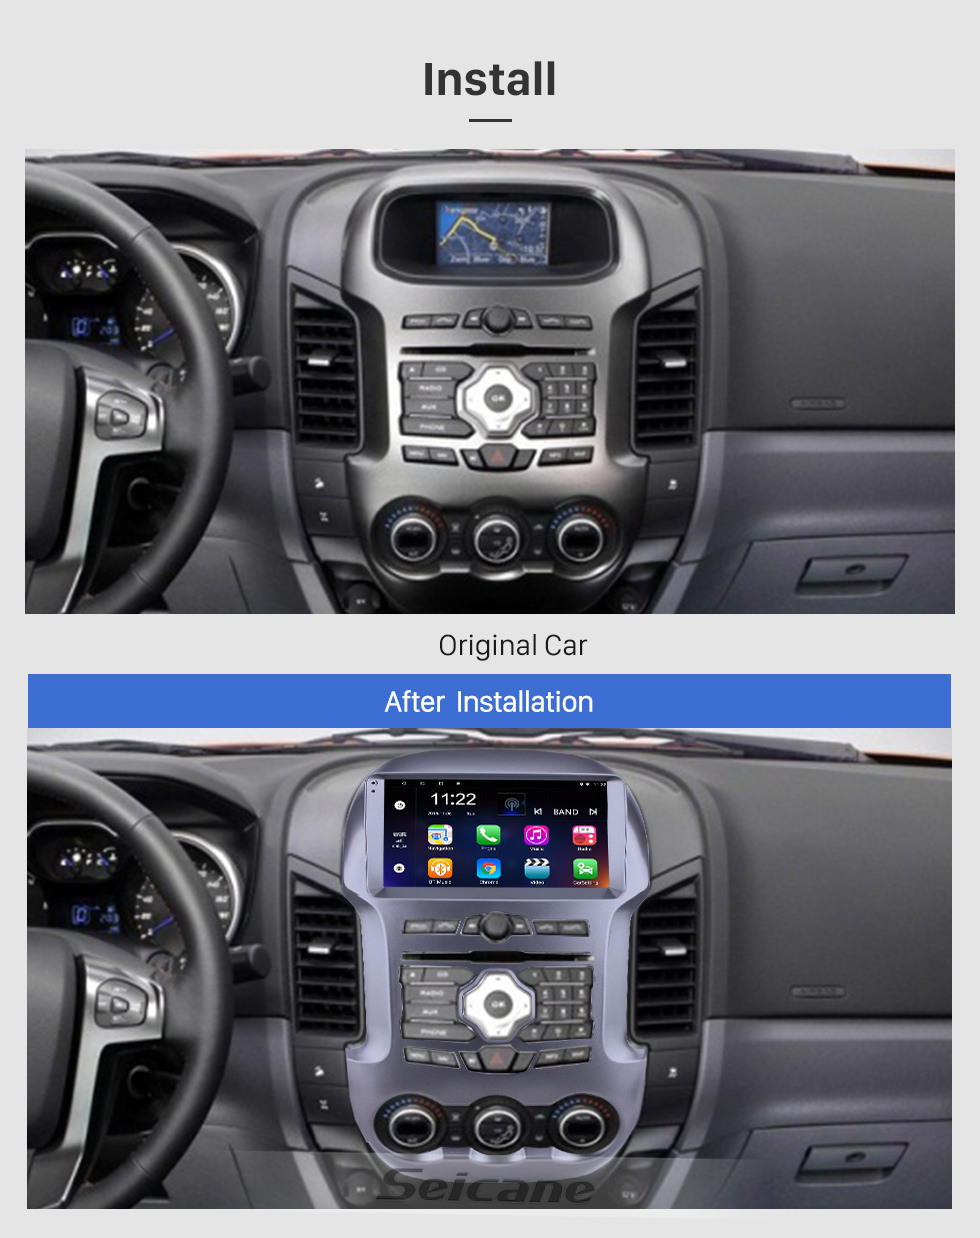 Seicane OEM 9 inch Android 10.0 for 2011-2016 Ford Ranger Radio Bluetooth HD Touchscreen GPS Navigation support Carplay DAB+ OBD2 TPMS